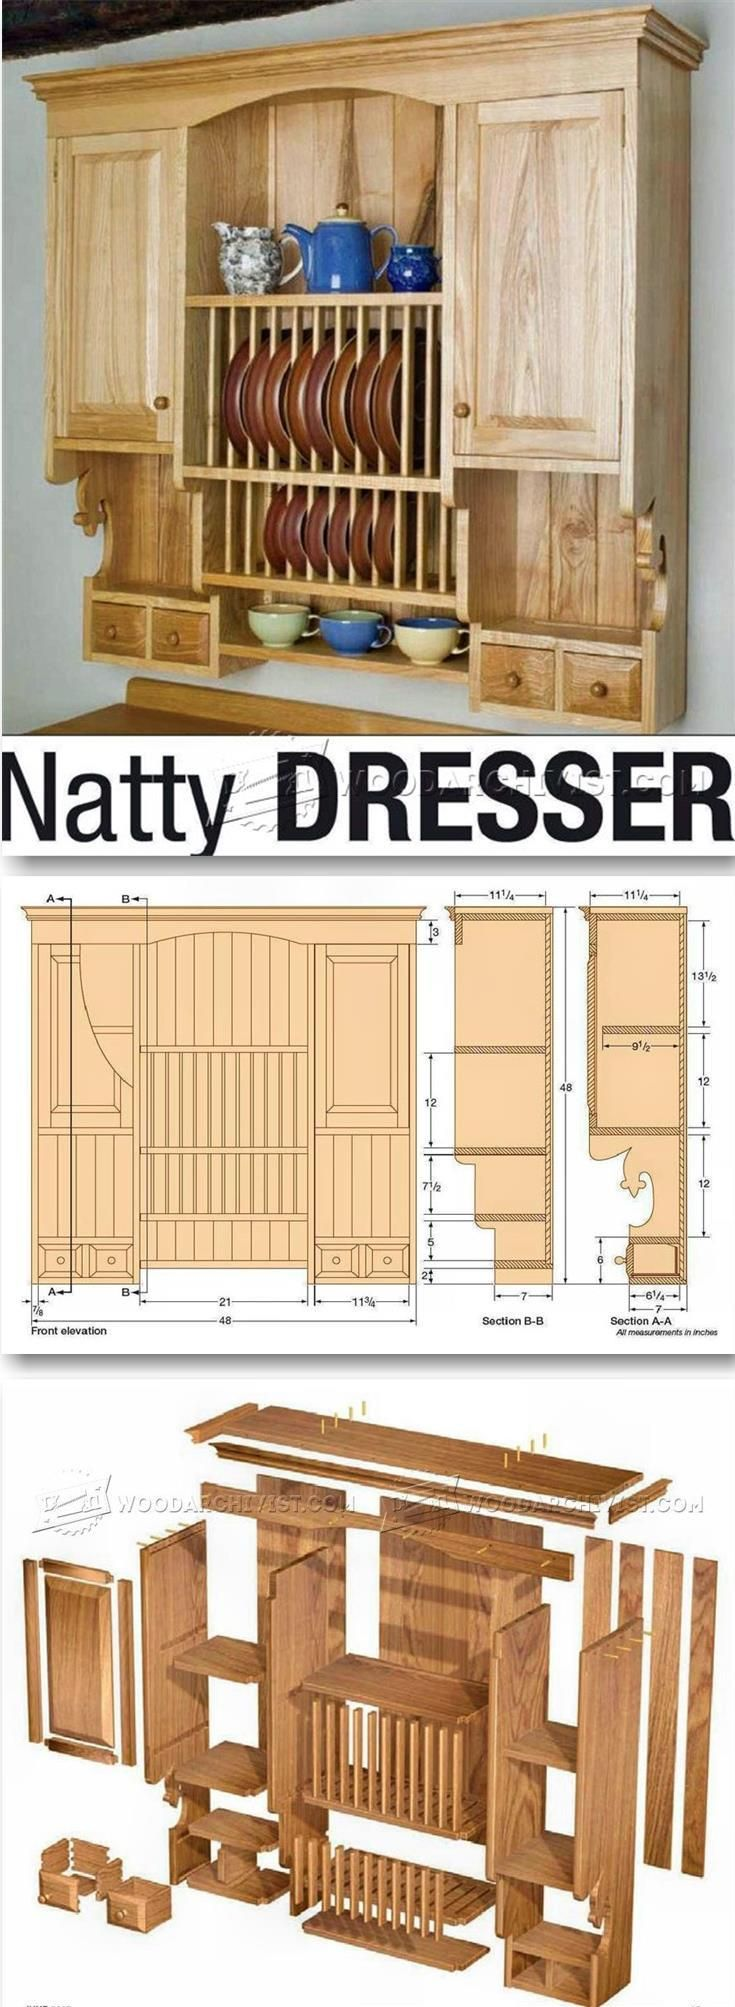 Kitchen wall hung dresser plans furniture plans and projects